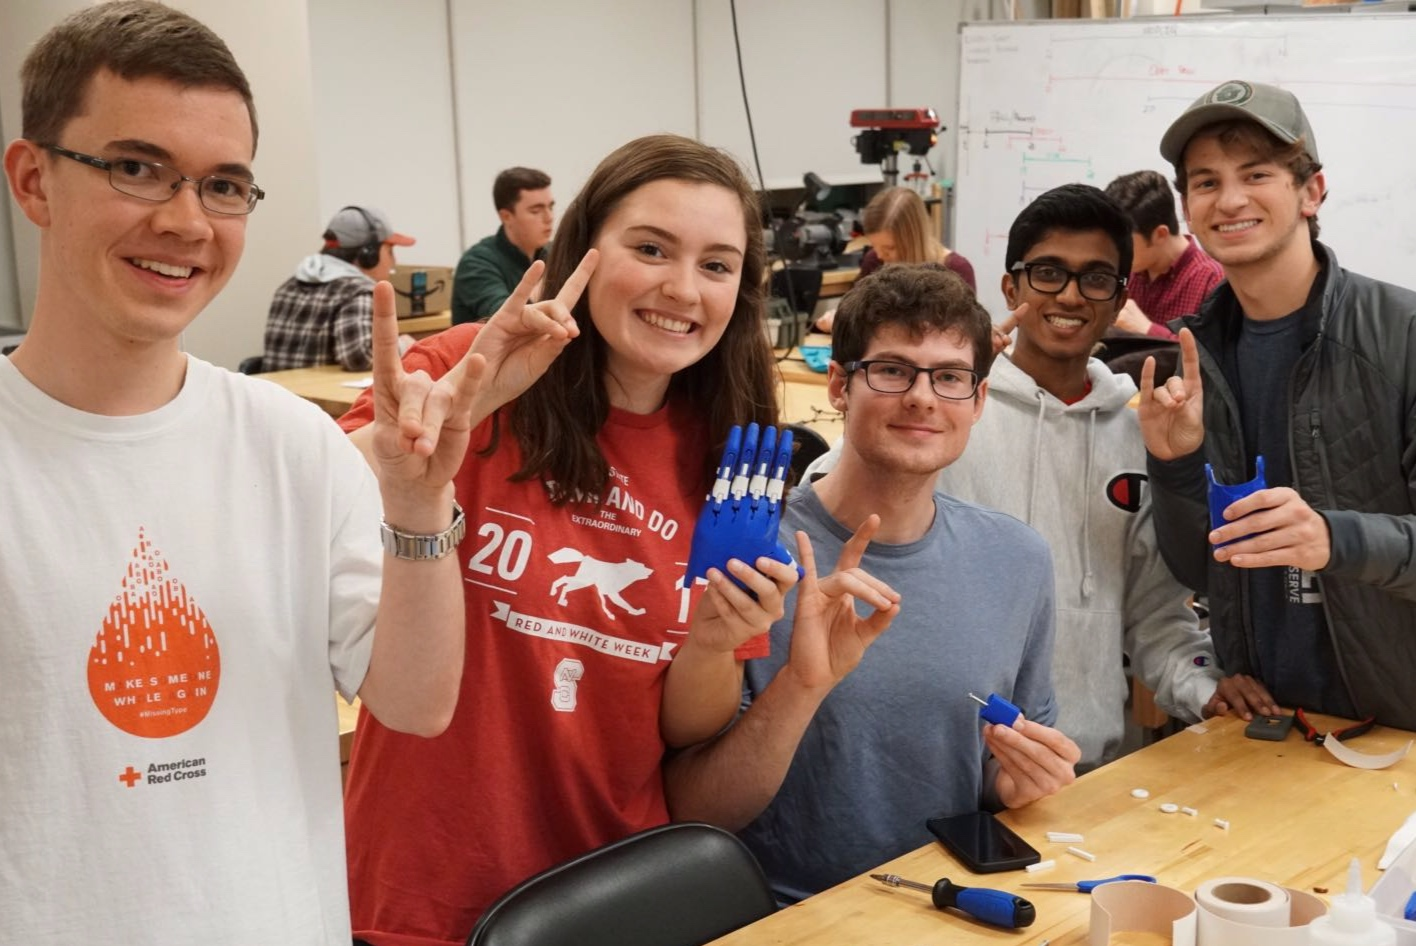 Students in the North Carolina State chapter work together to assemble 3D printed prosthetic devices.